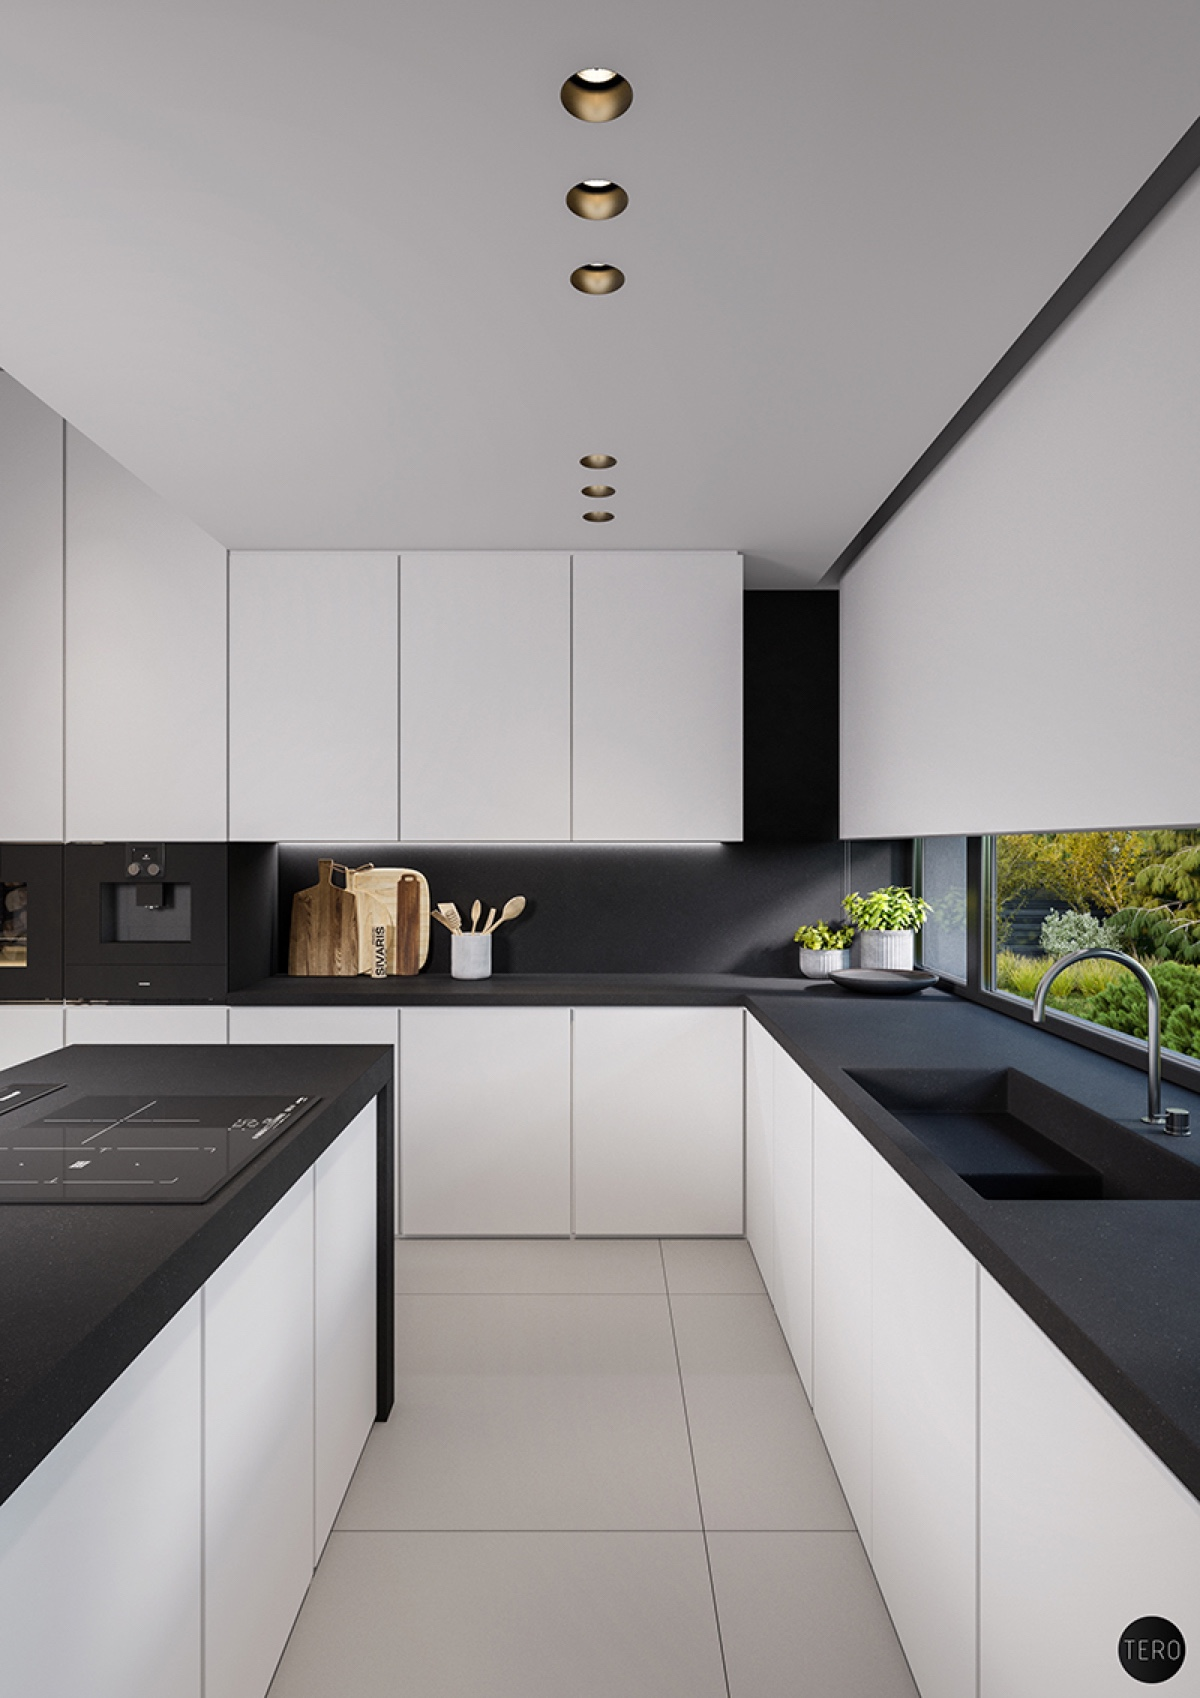 black-countertops-in-white-kitchen.jpg